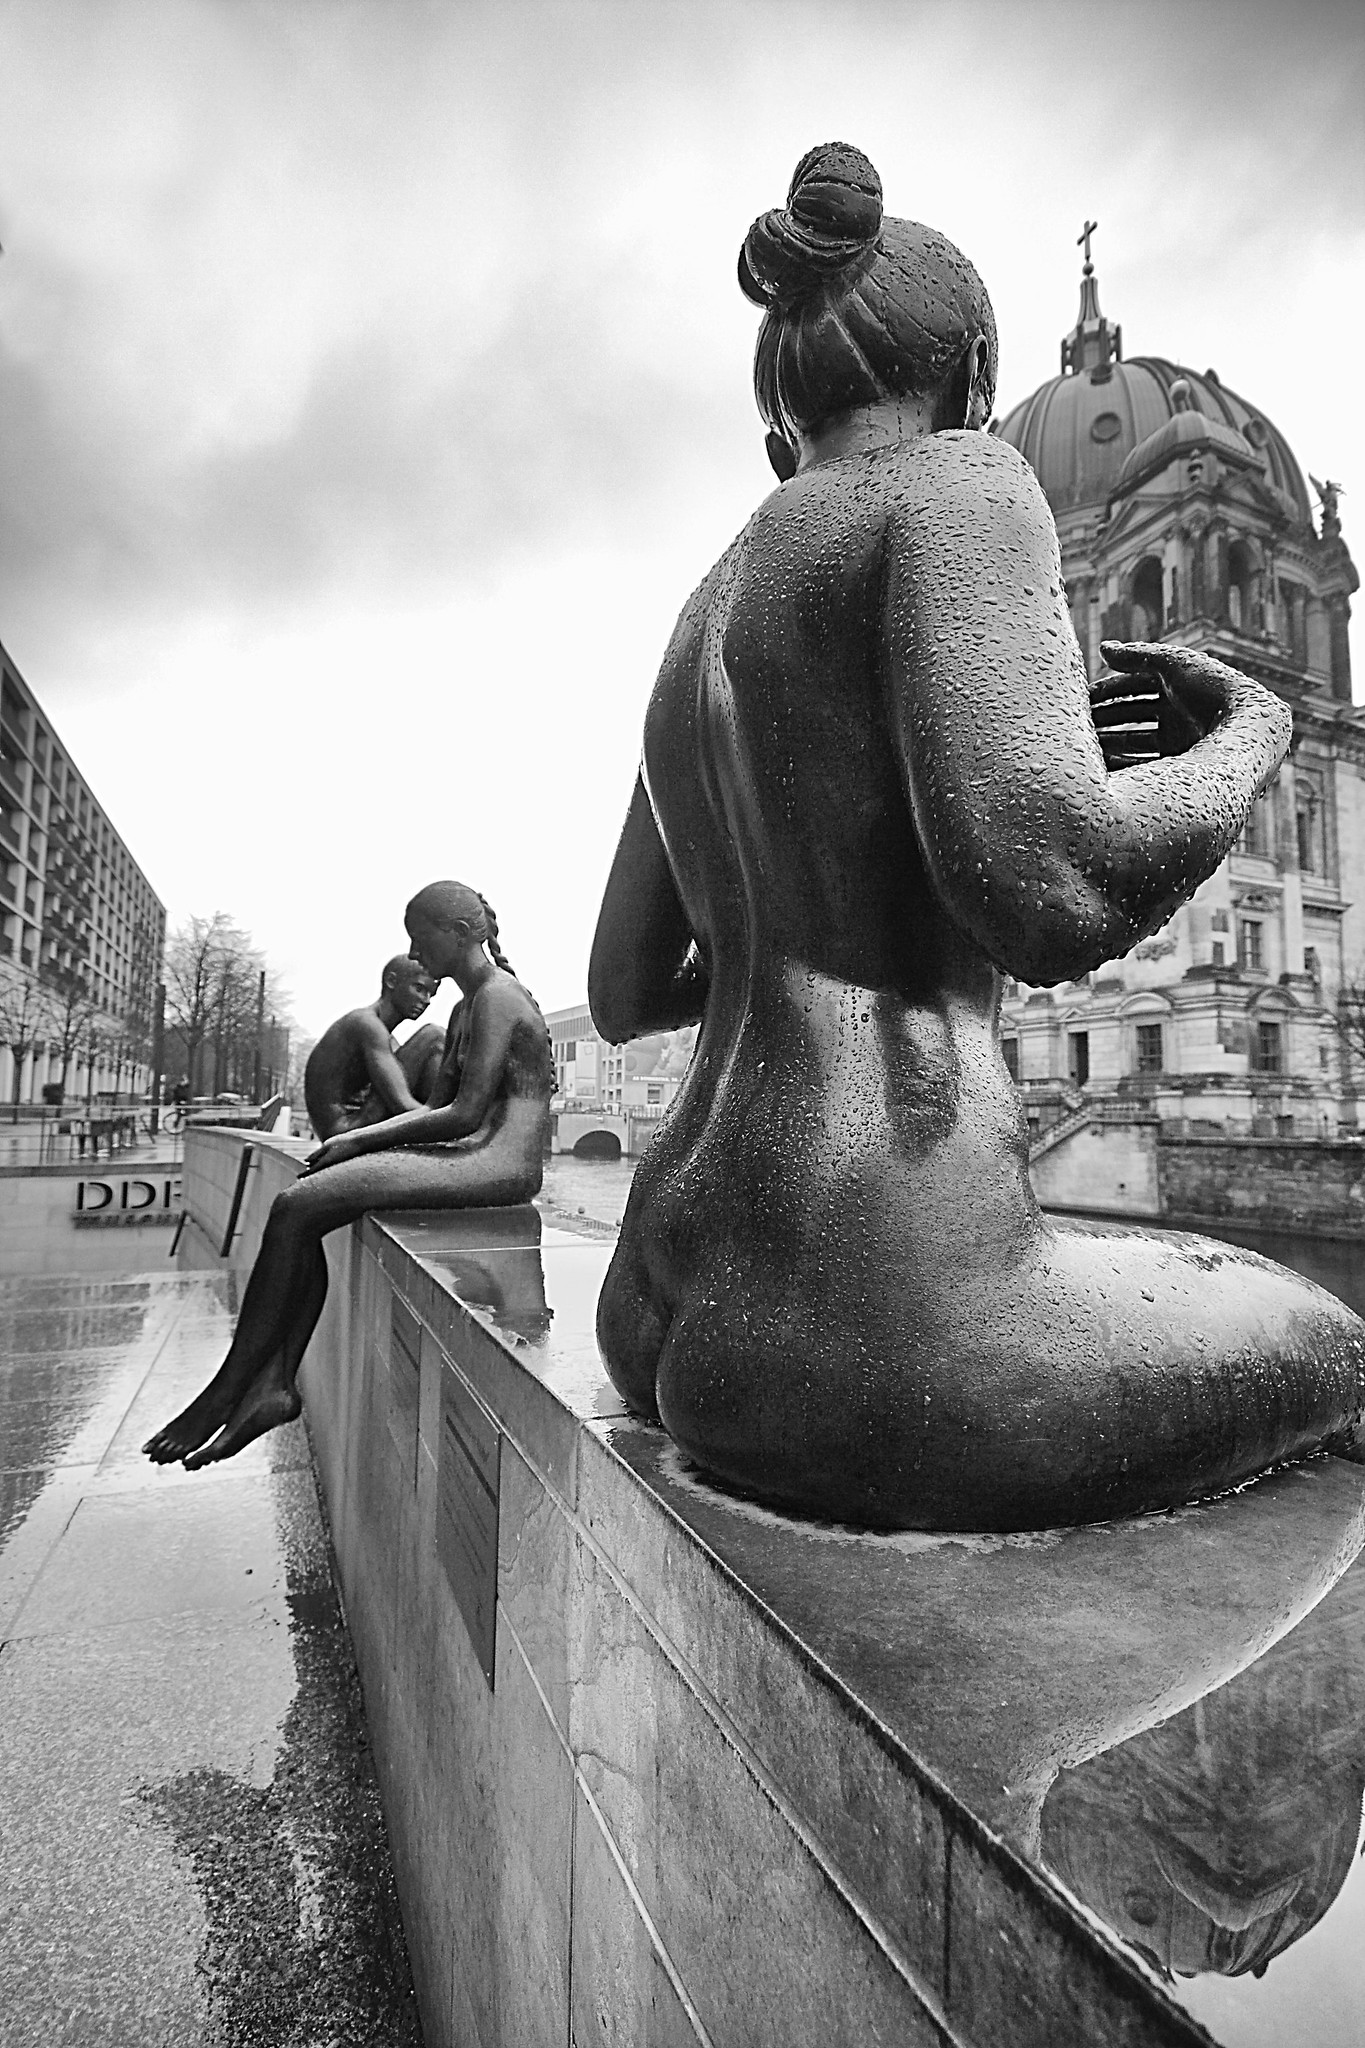 """Drei Mädchen und ein Knab (Bathers on the Spree)"", statue by Wilfried Fitzenreiter, photo by Phil W Shirley"